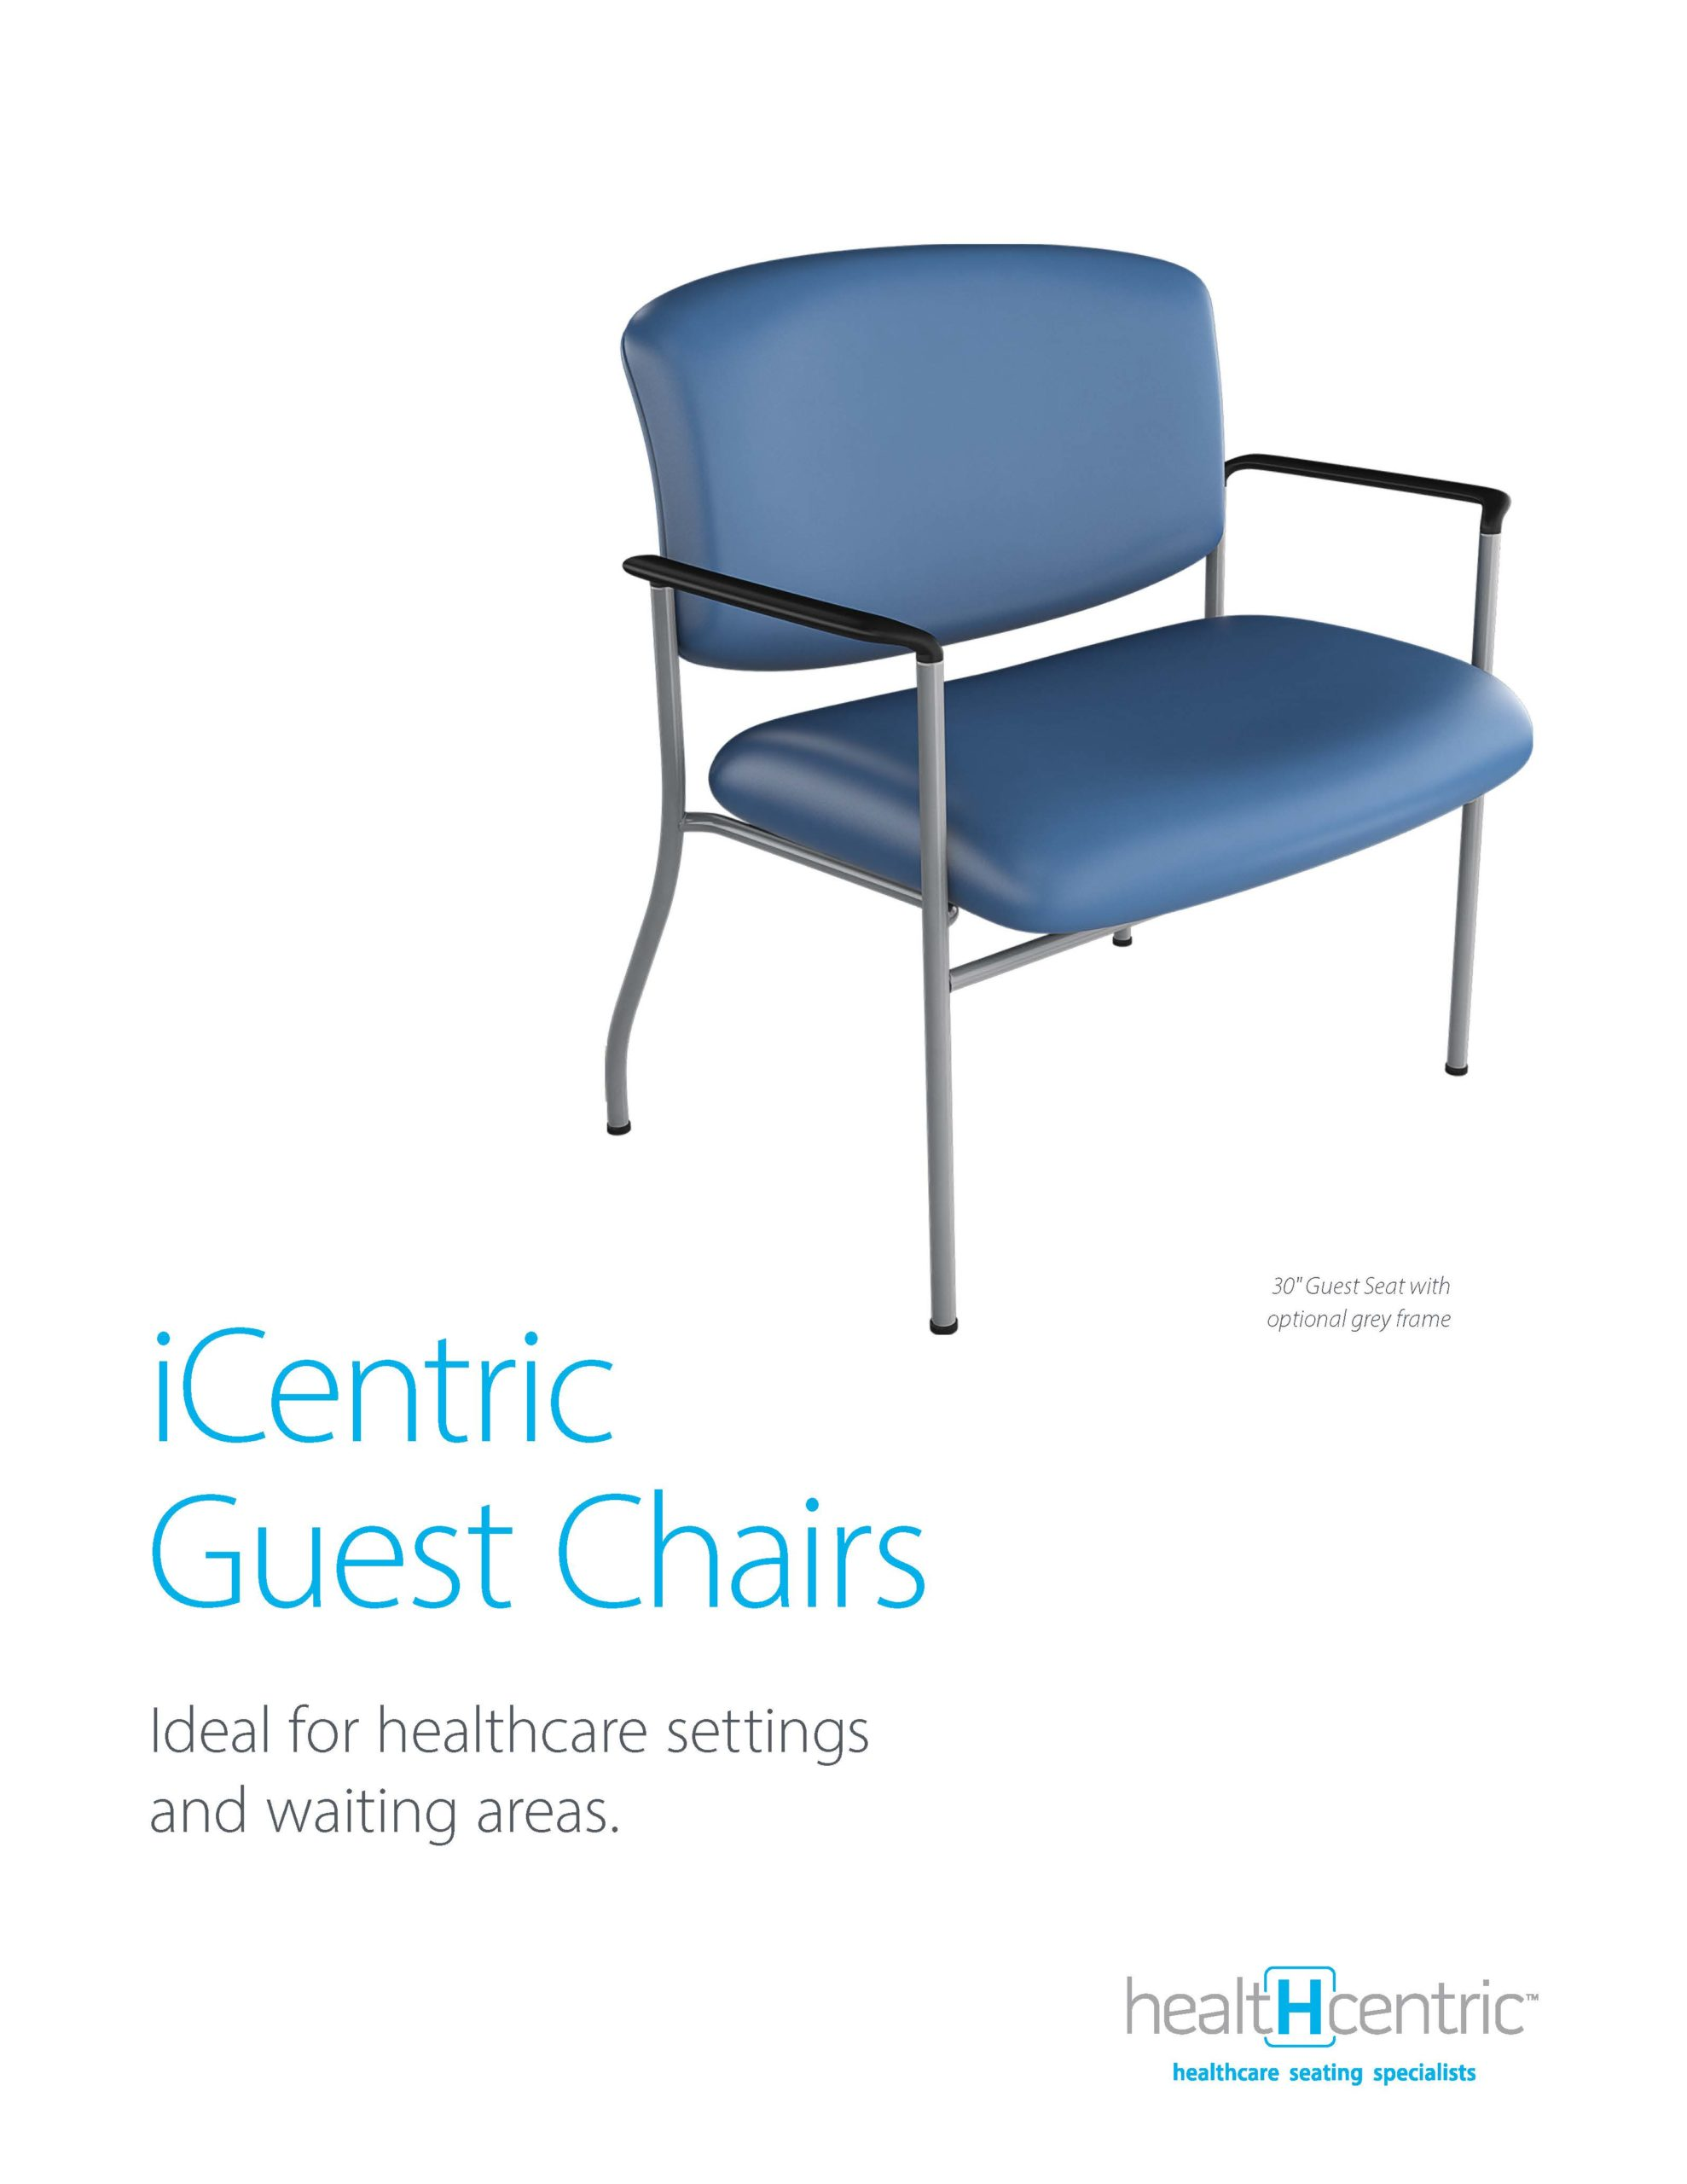 iCentric Guest Chairs